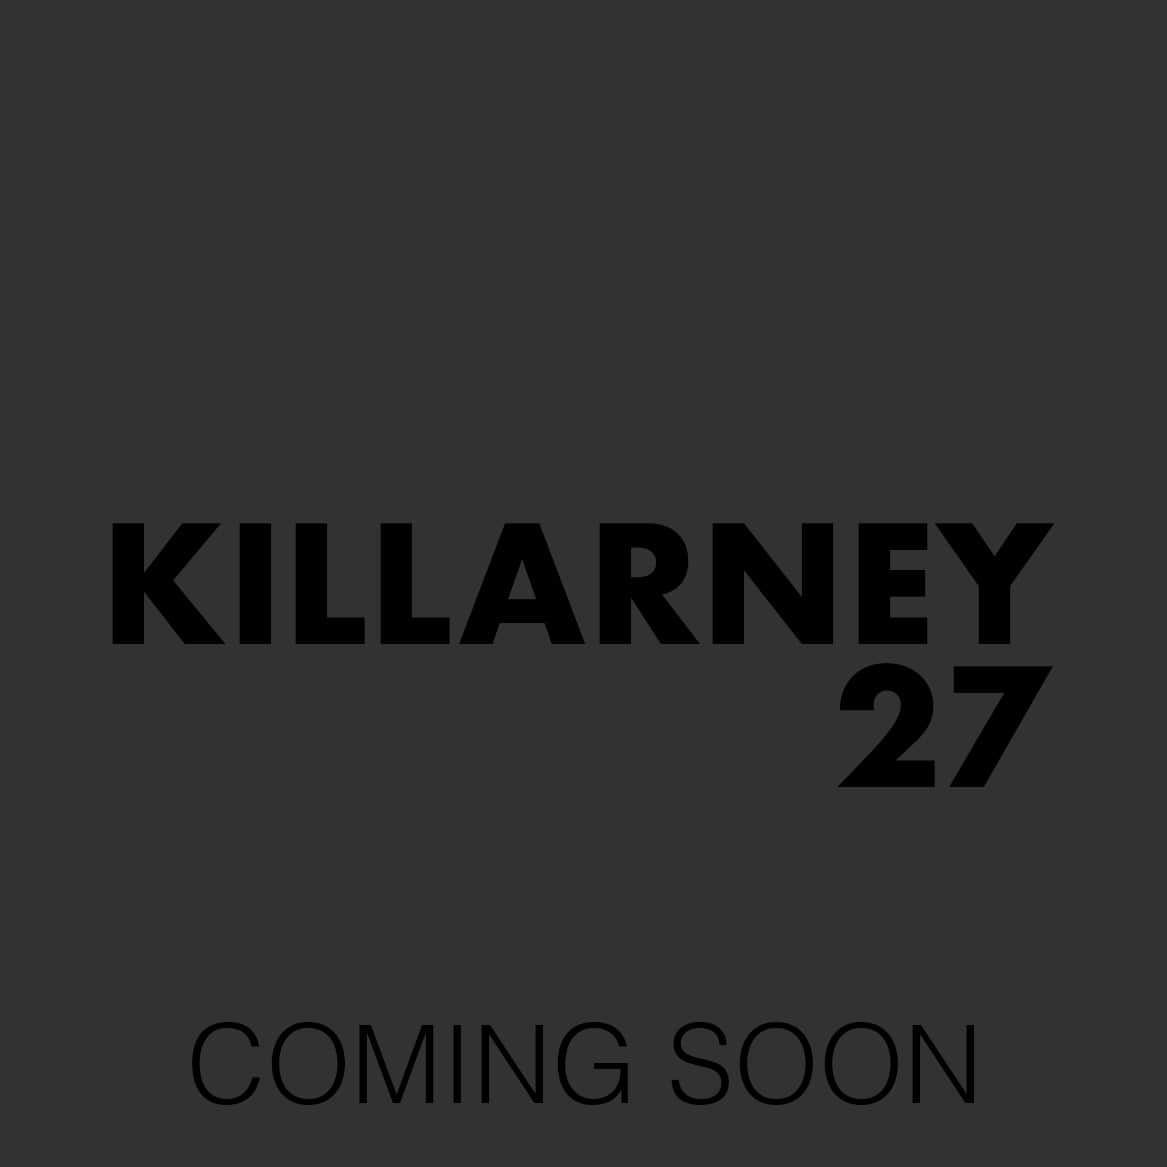 Killarney 27 - Content Cover_Coming Soon-min.jpg